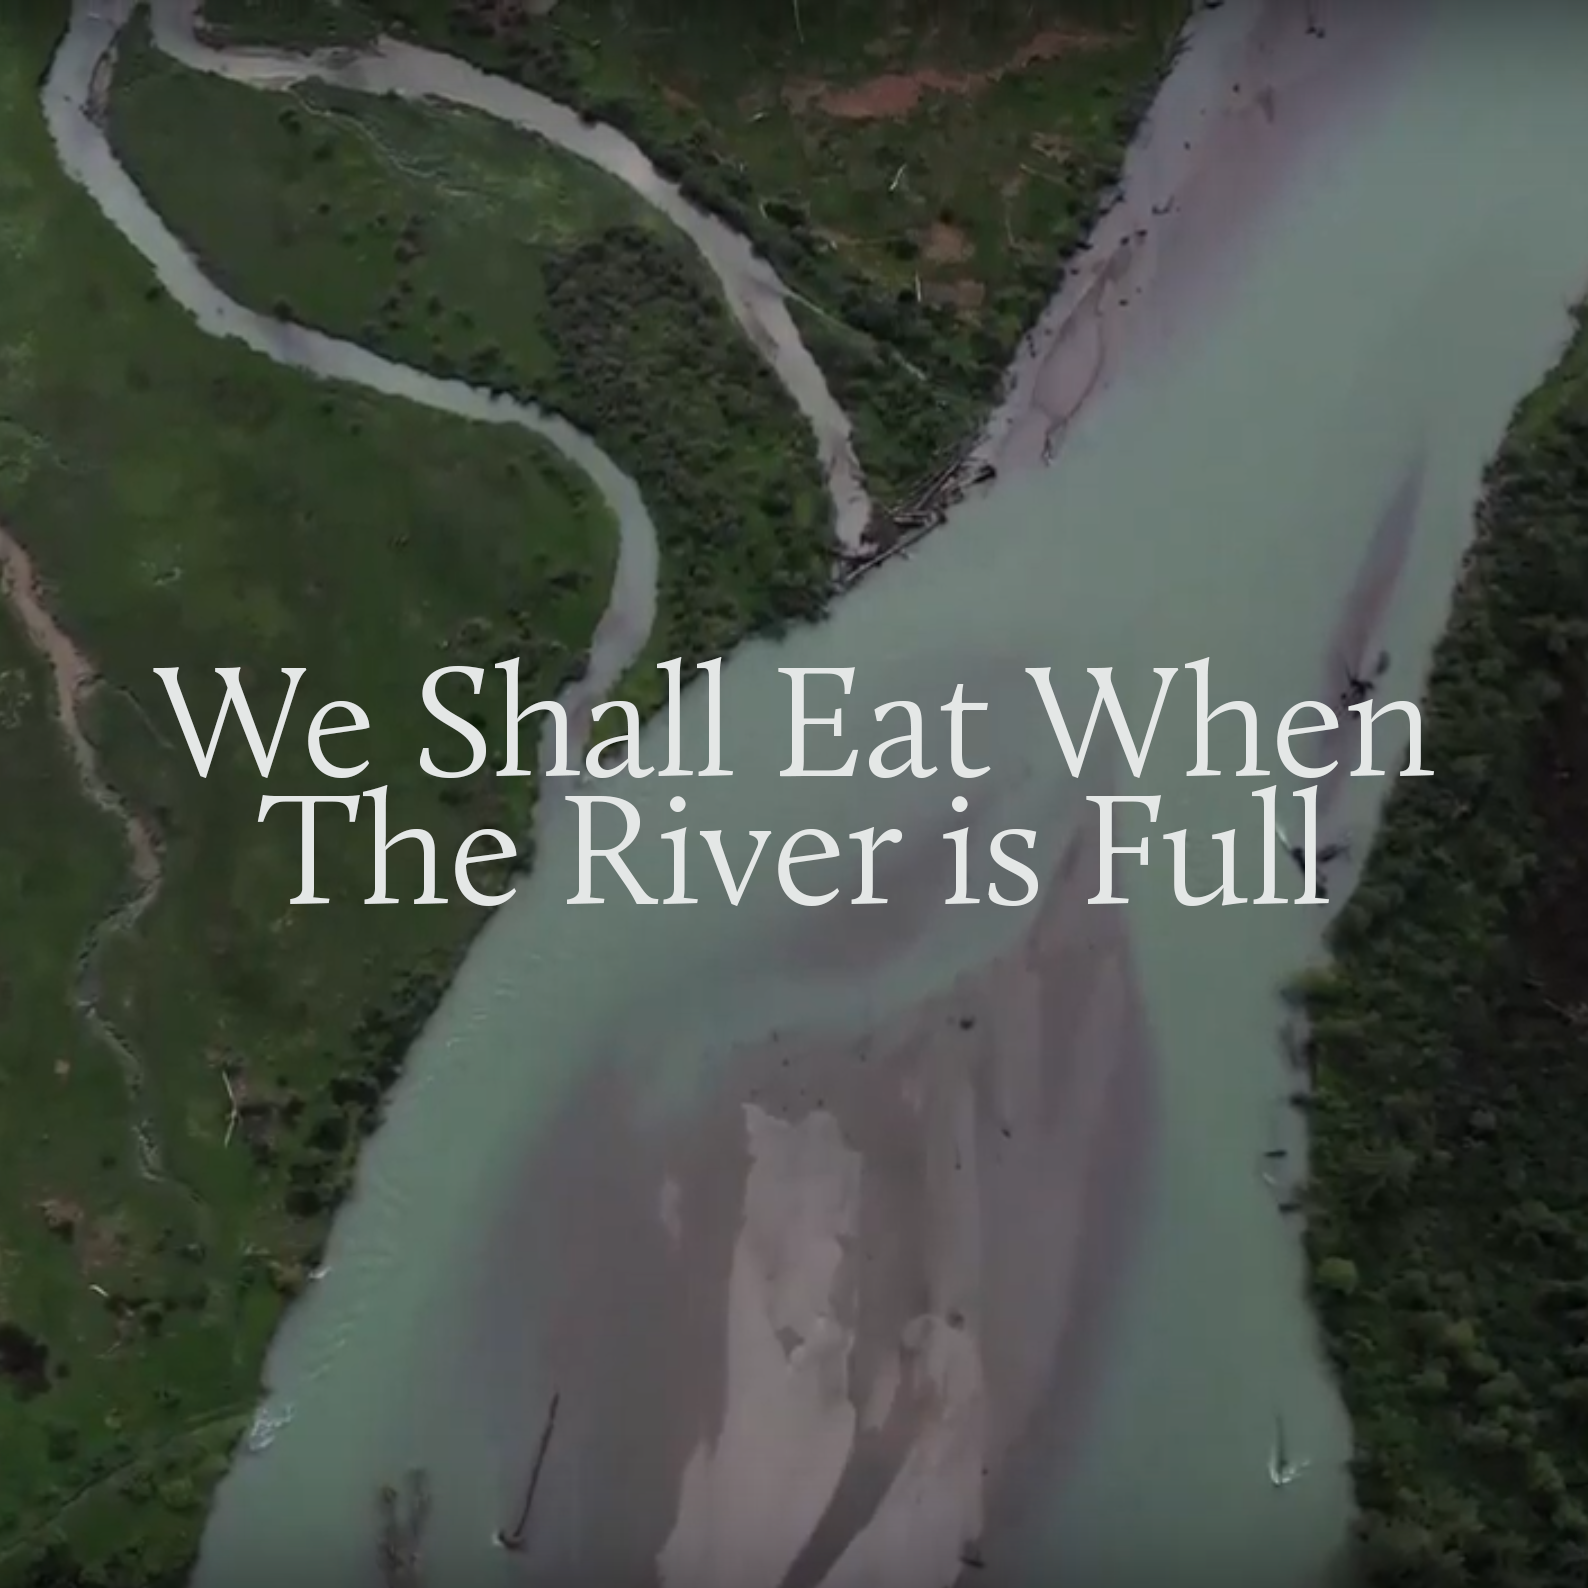 We Shall Eat When the River is Full